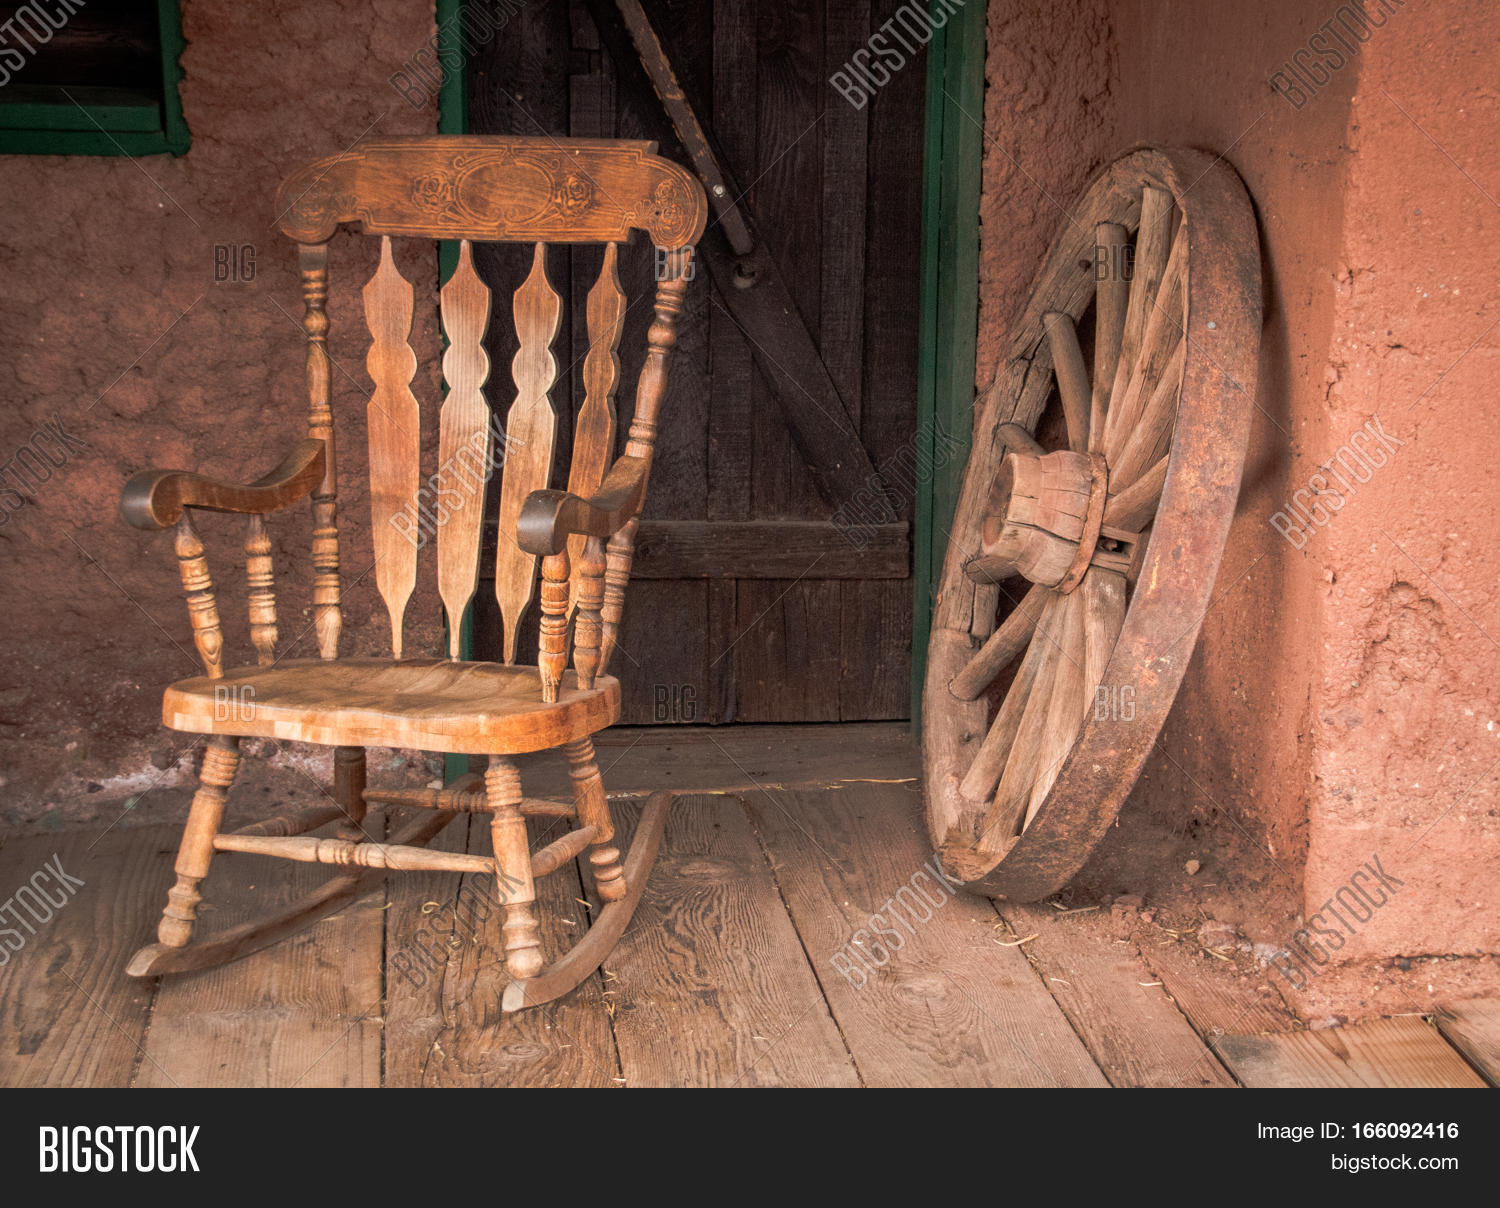 Rocking chair and old wooden wheel in Calico ghost town in USA & Rocking Chair Old Image u0026 Photo (Free Trial) | Bigstock